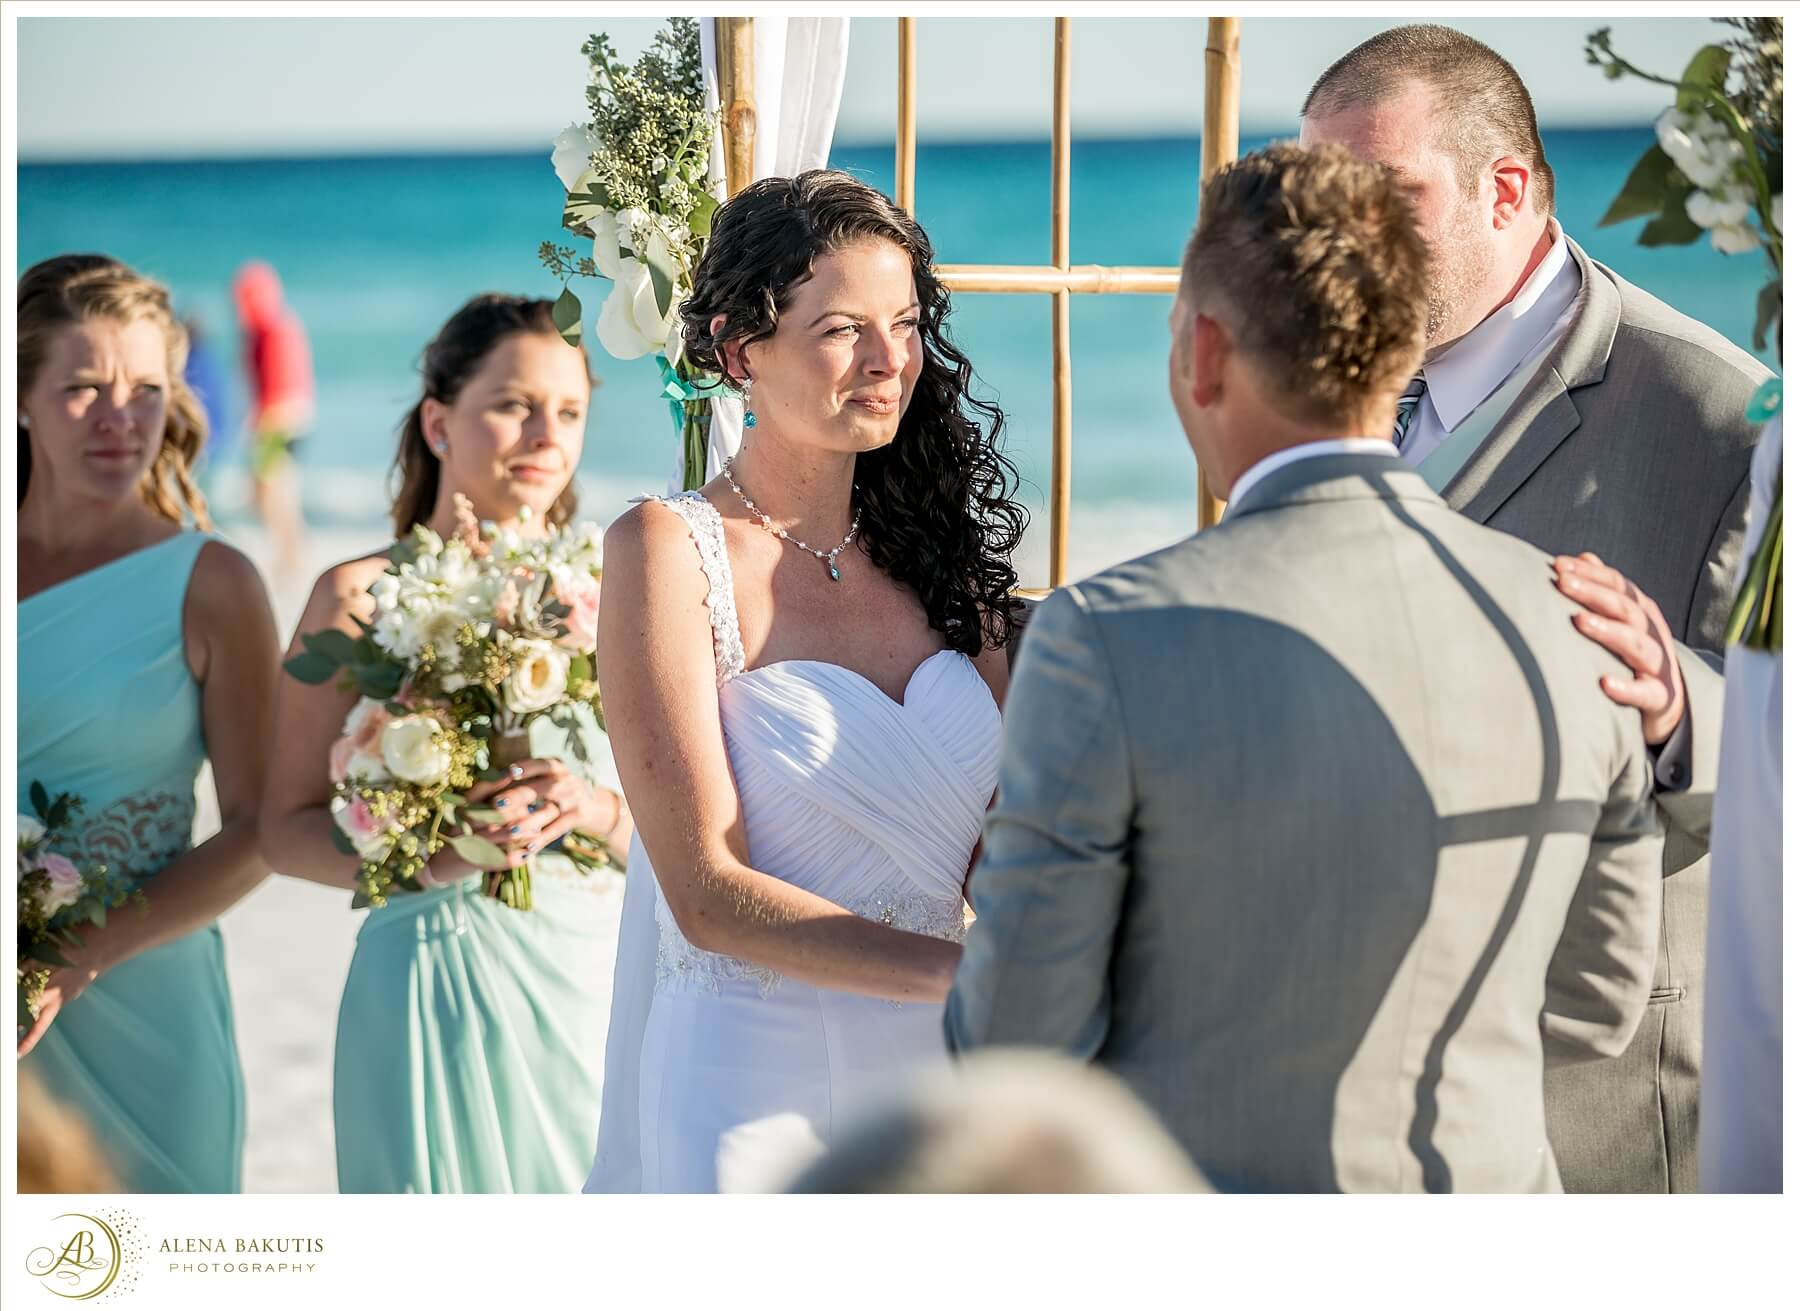 beach weddings destin fl Alena Bakutis Photography - Amber Brandon-359_WEB